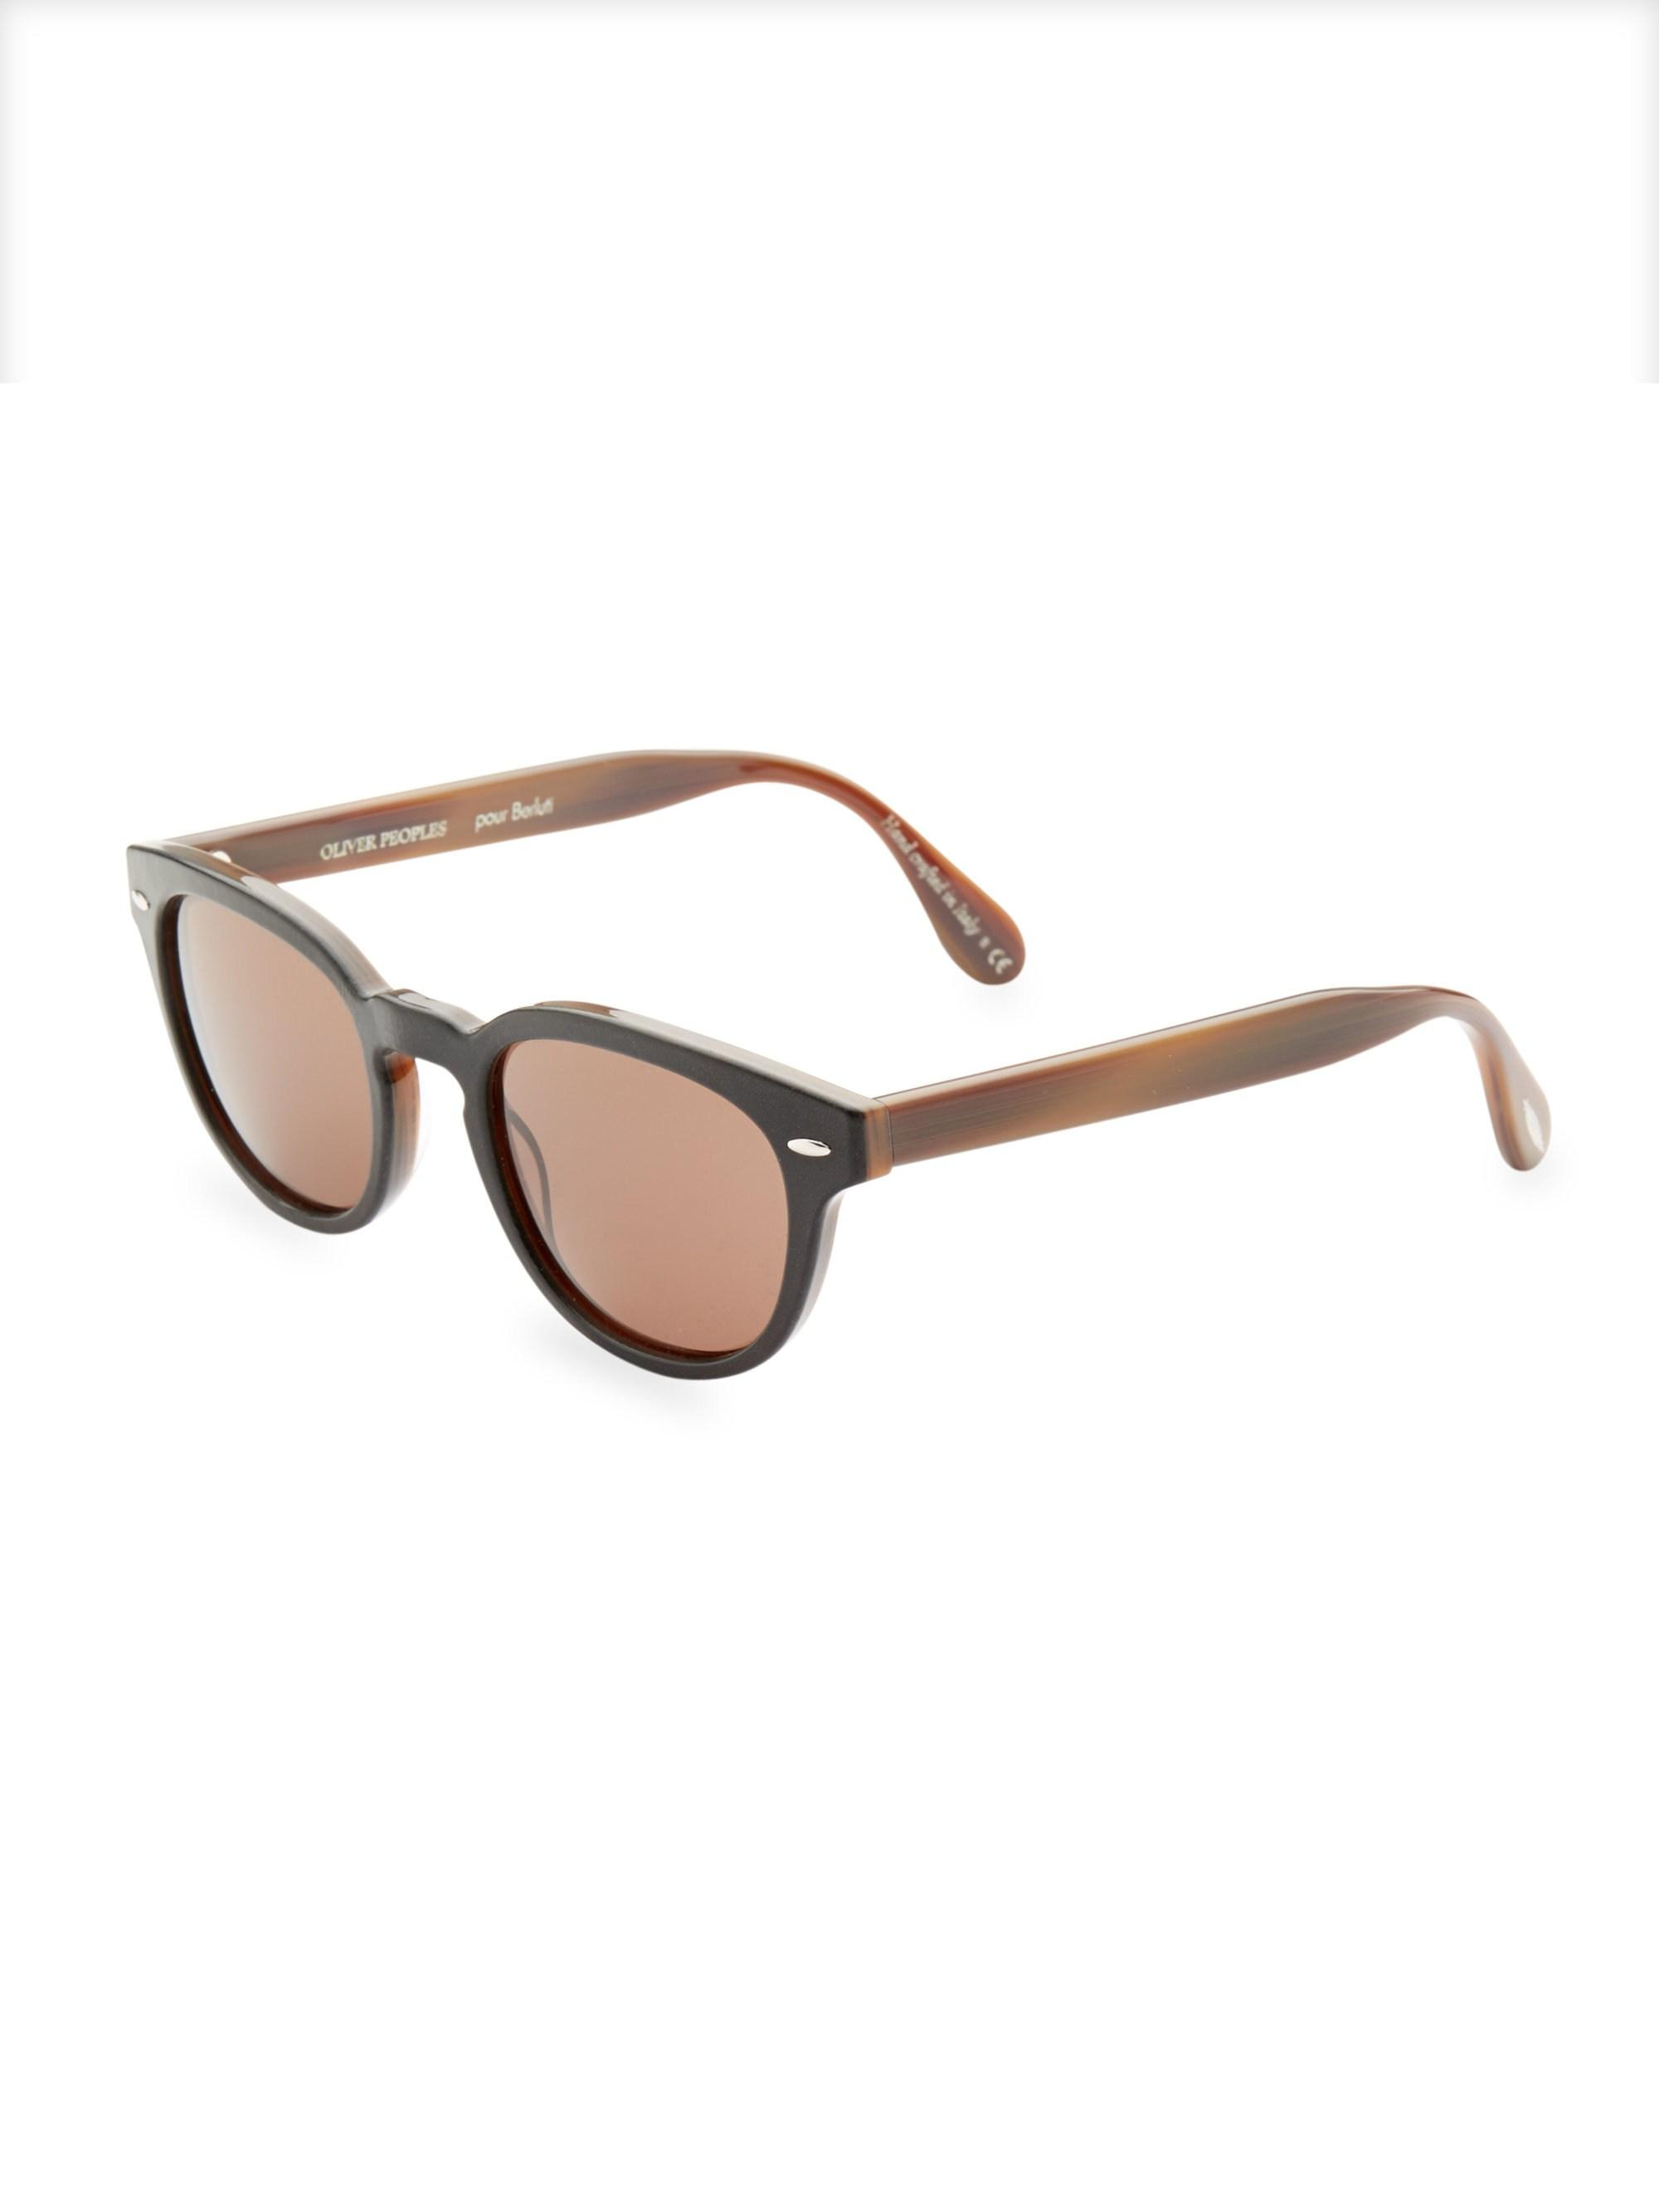 f65d6e0db28 Oliver Peoples - Brown Sheldrake Leather 47mm Sunglasses for Men - Lyst.  View fullscreen